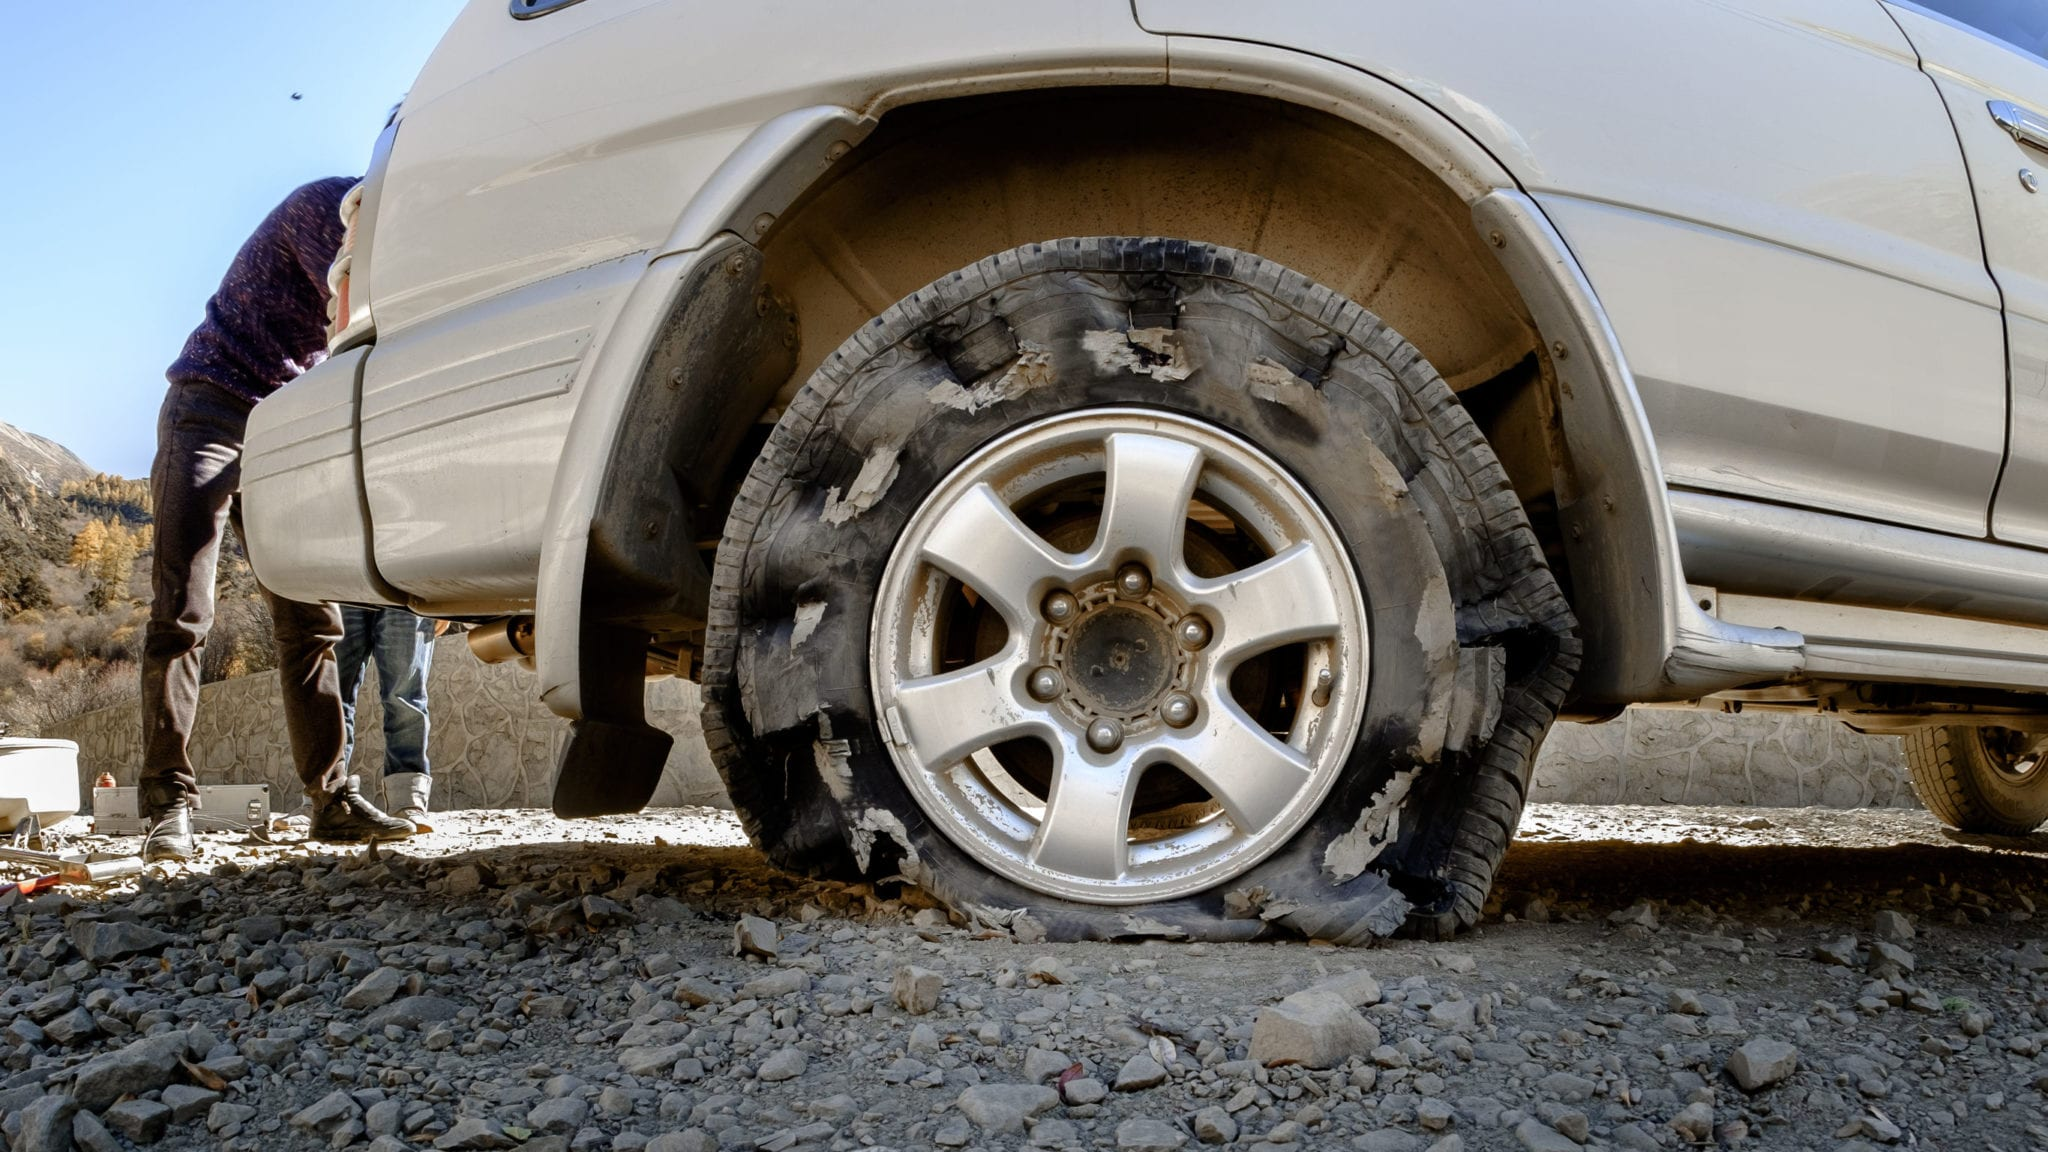 Parker County Auto Accident Lawyer